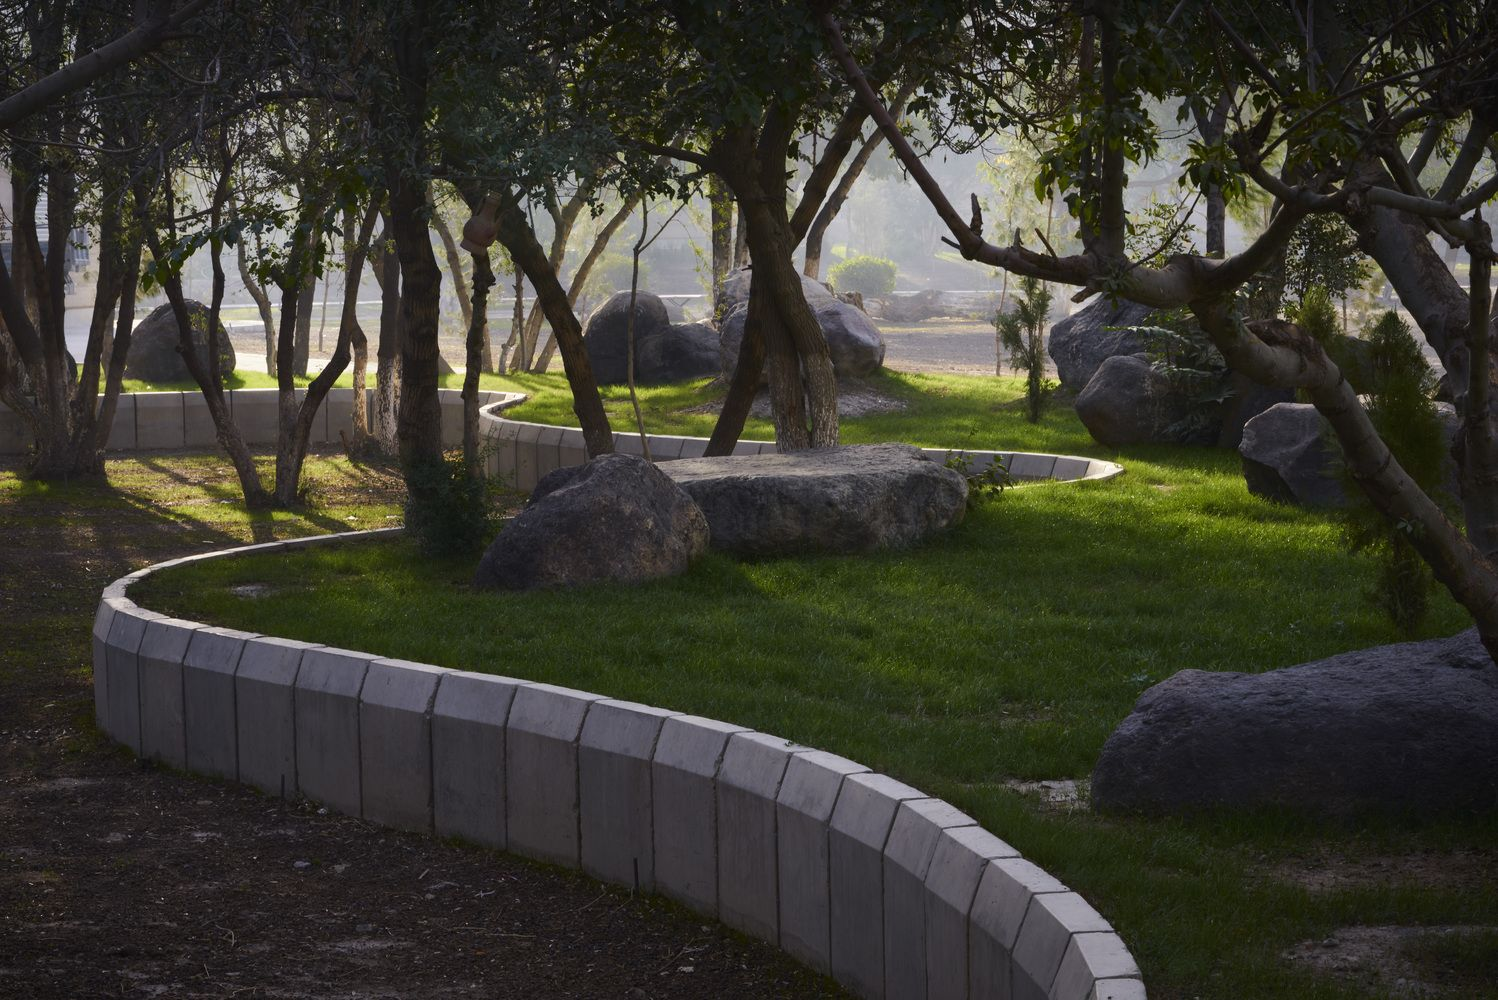 Gallery Of Chihilsitoon Garden Project Aga Khan Trust For Culture 24 Garden Projects Garden Landscape Design